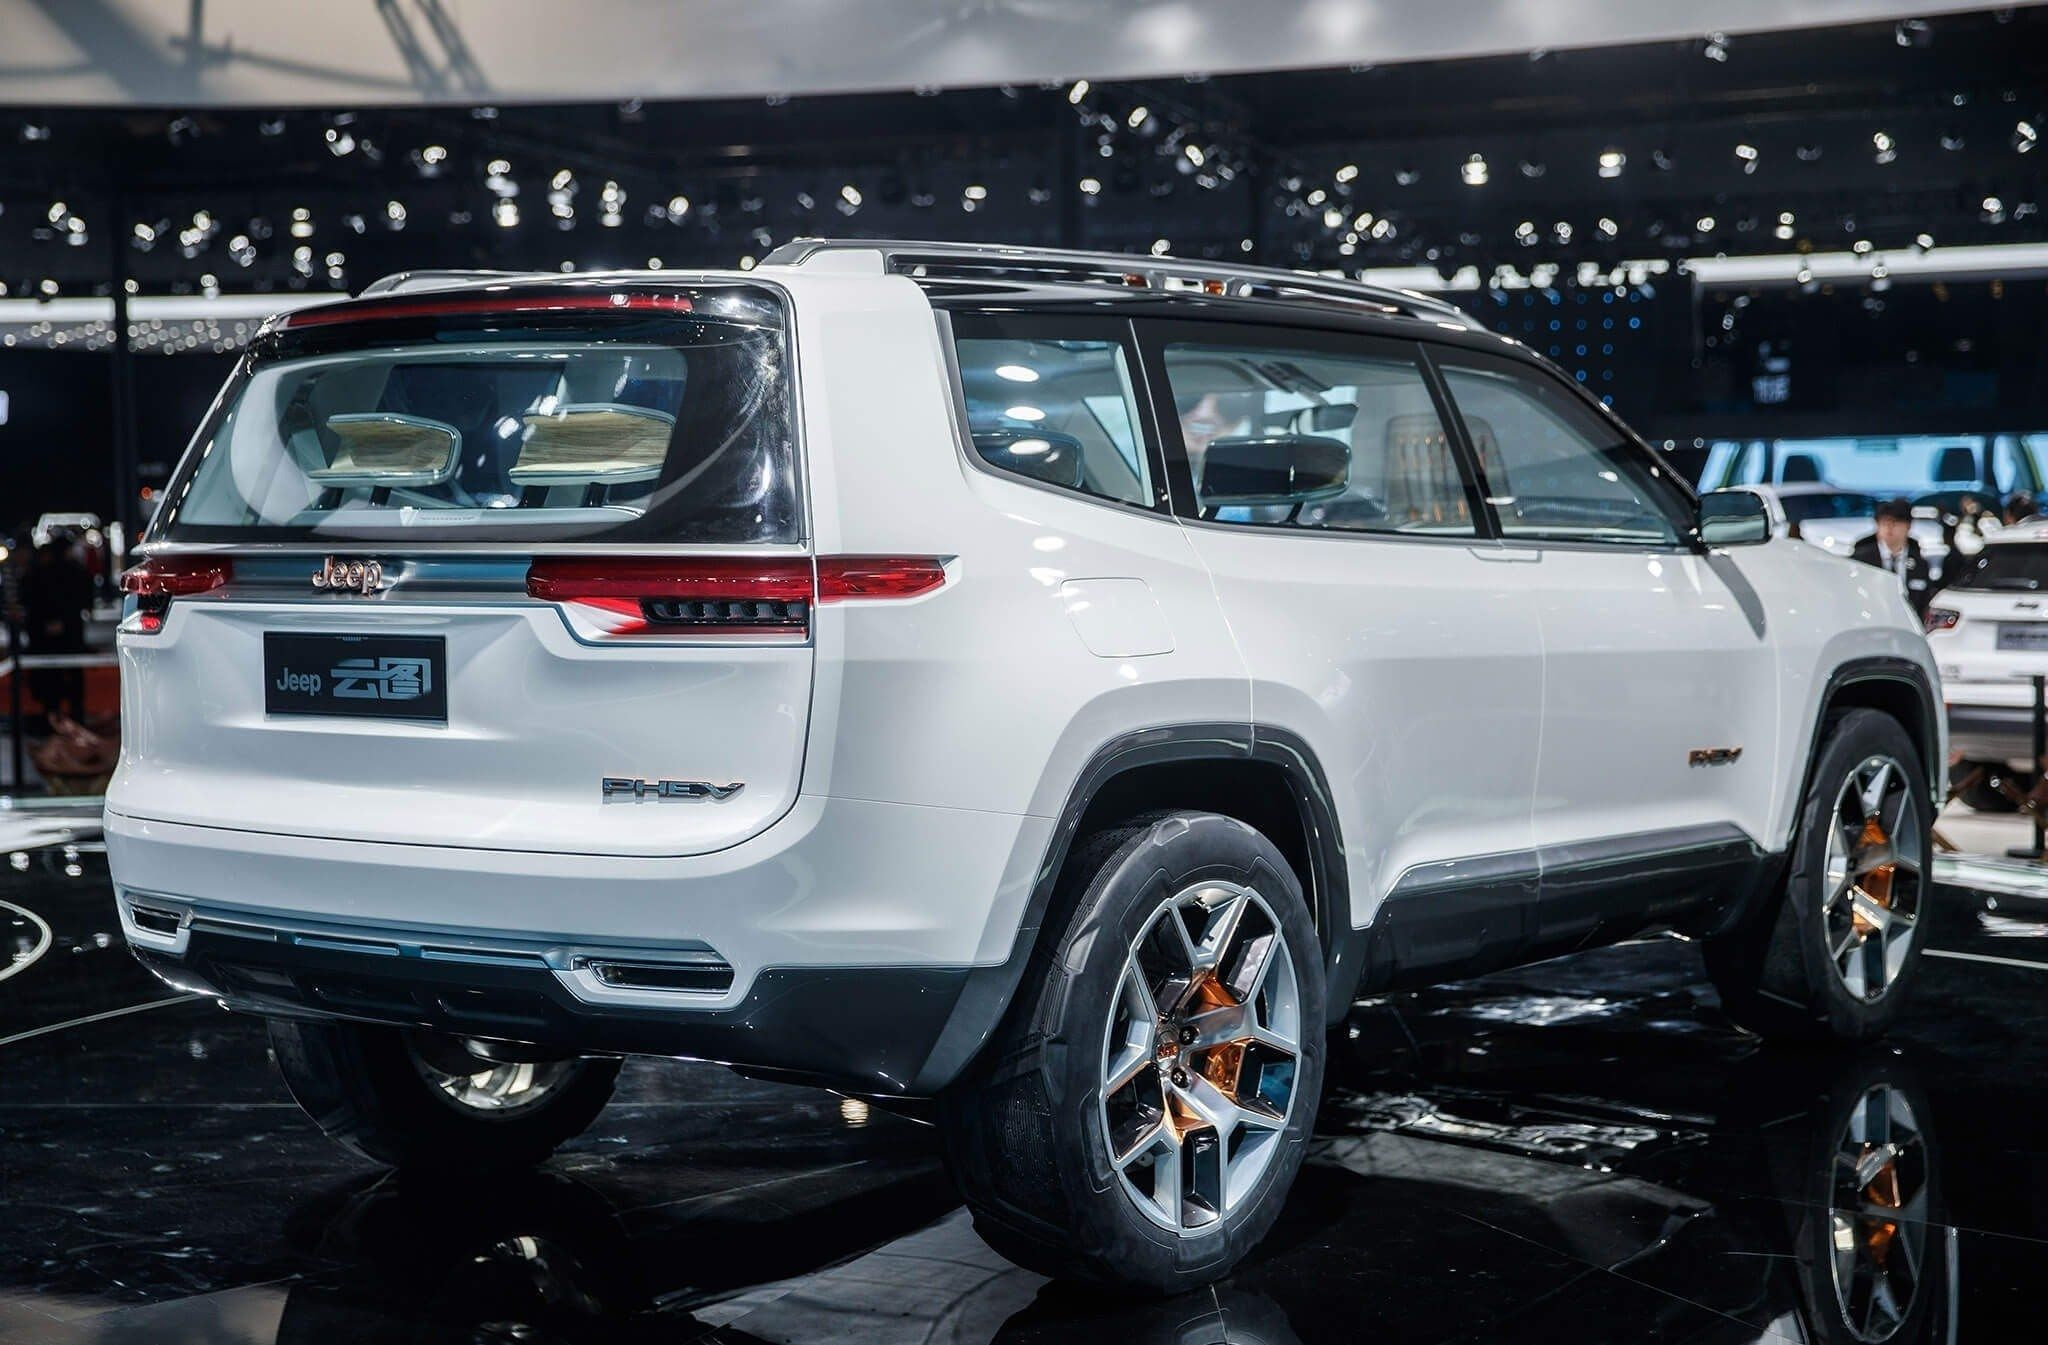 53 New 2020 Jeep Grand Wagoneer Pricing Cars Review Cars Review